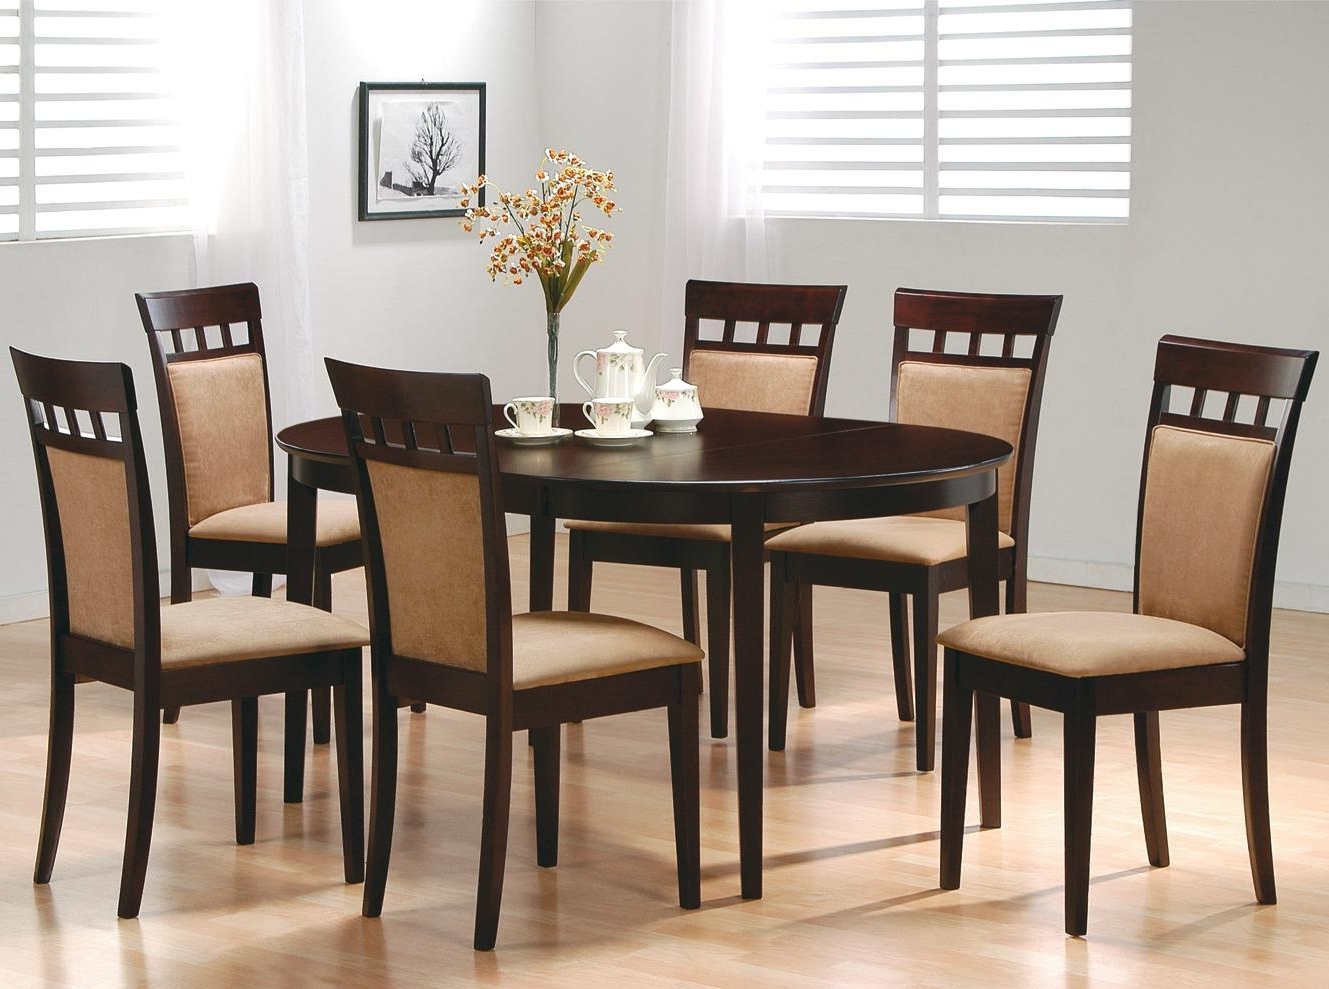 Newest Wooden Dining Tables And 6 Chairs with Coaster Mix & Match 7 Piece Dining Set